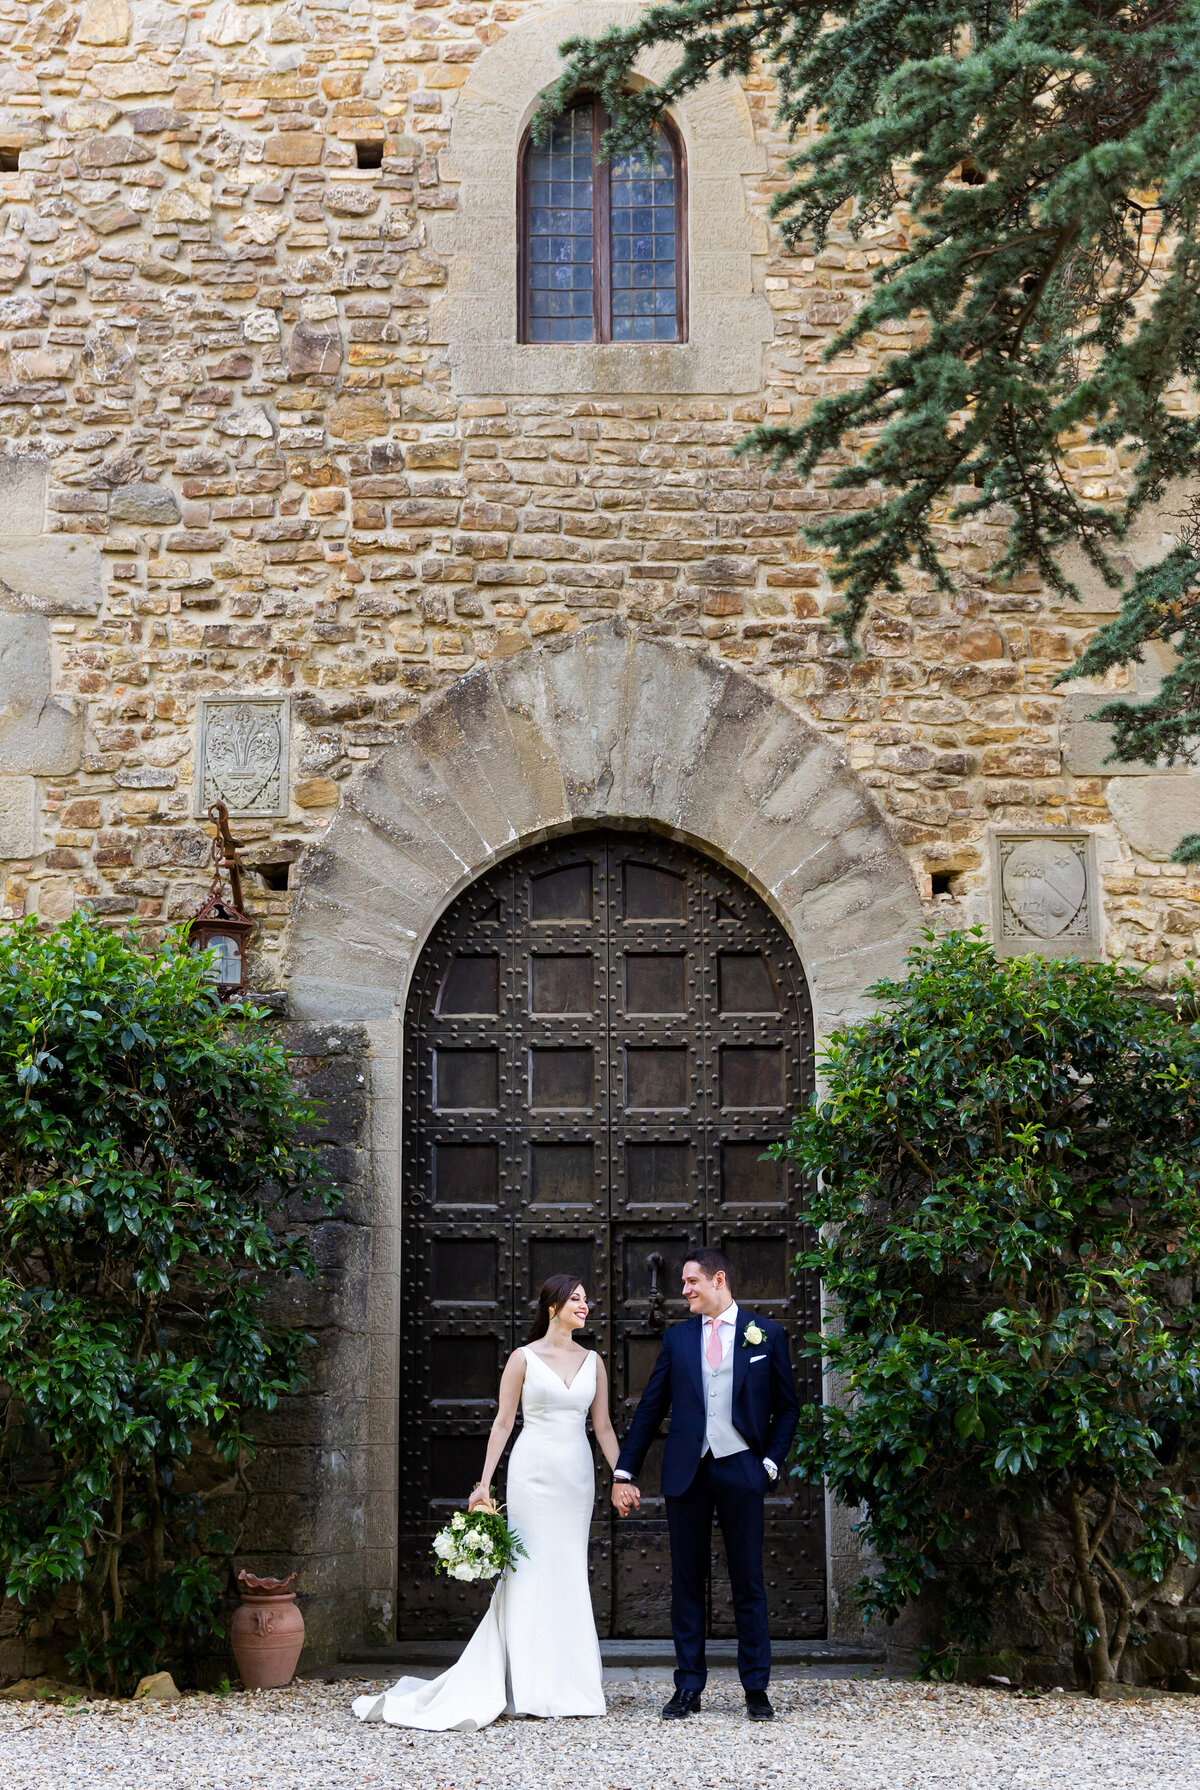 Tuscany_Italy_0186_Helga_Marc_Wedding_2246